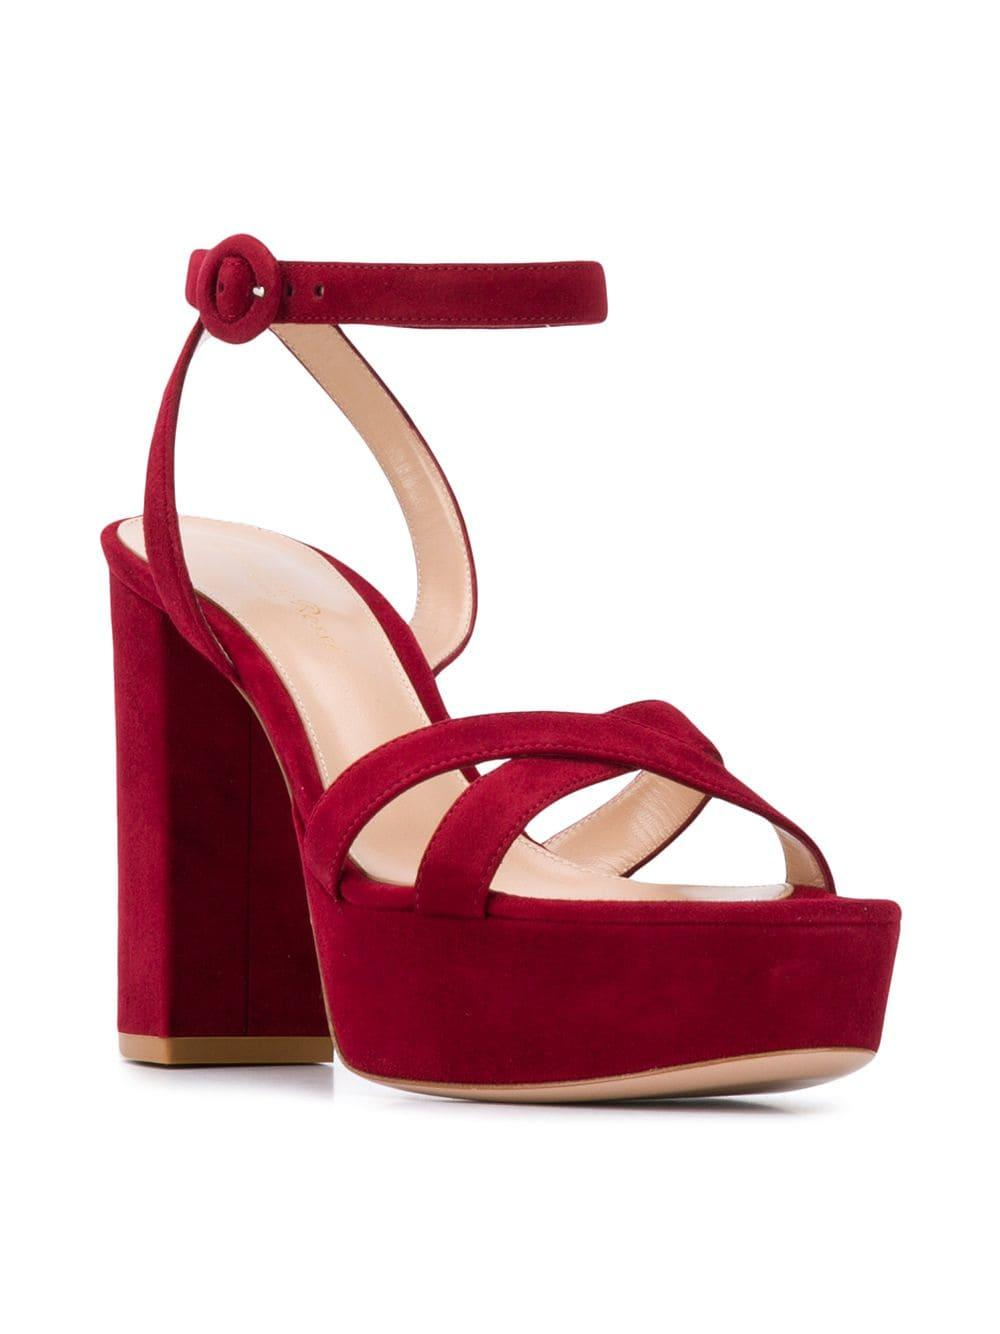 3924c5eb1c7 Lyst - Gianvito Rossi Poppy Sandals in Red - Save 45%